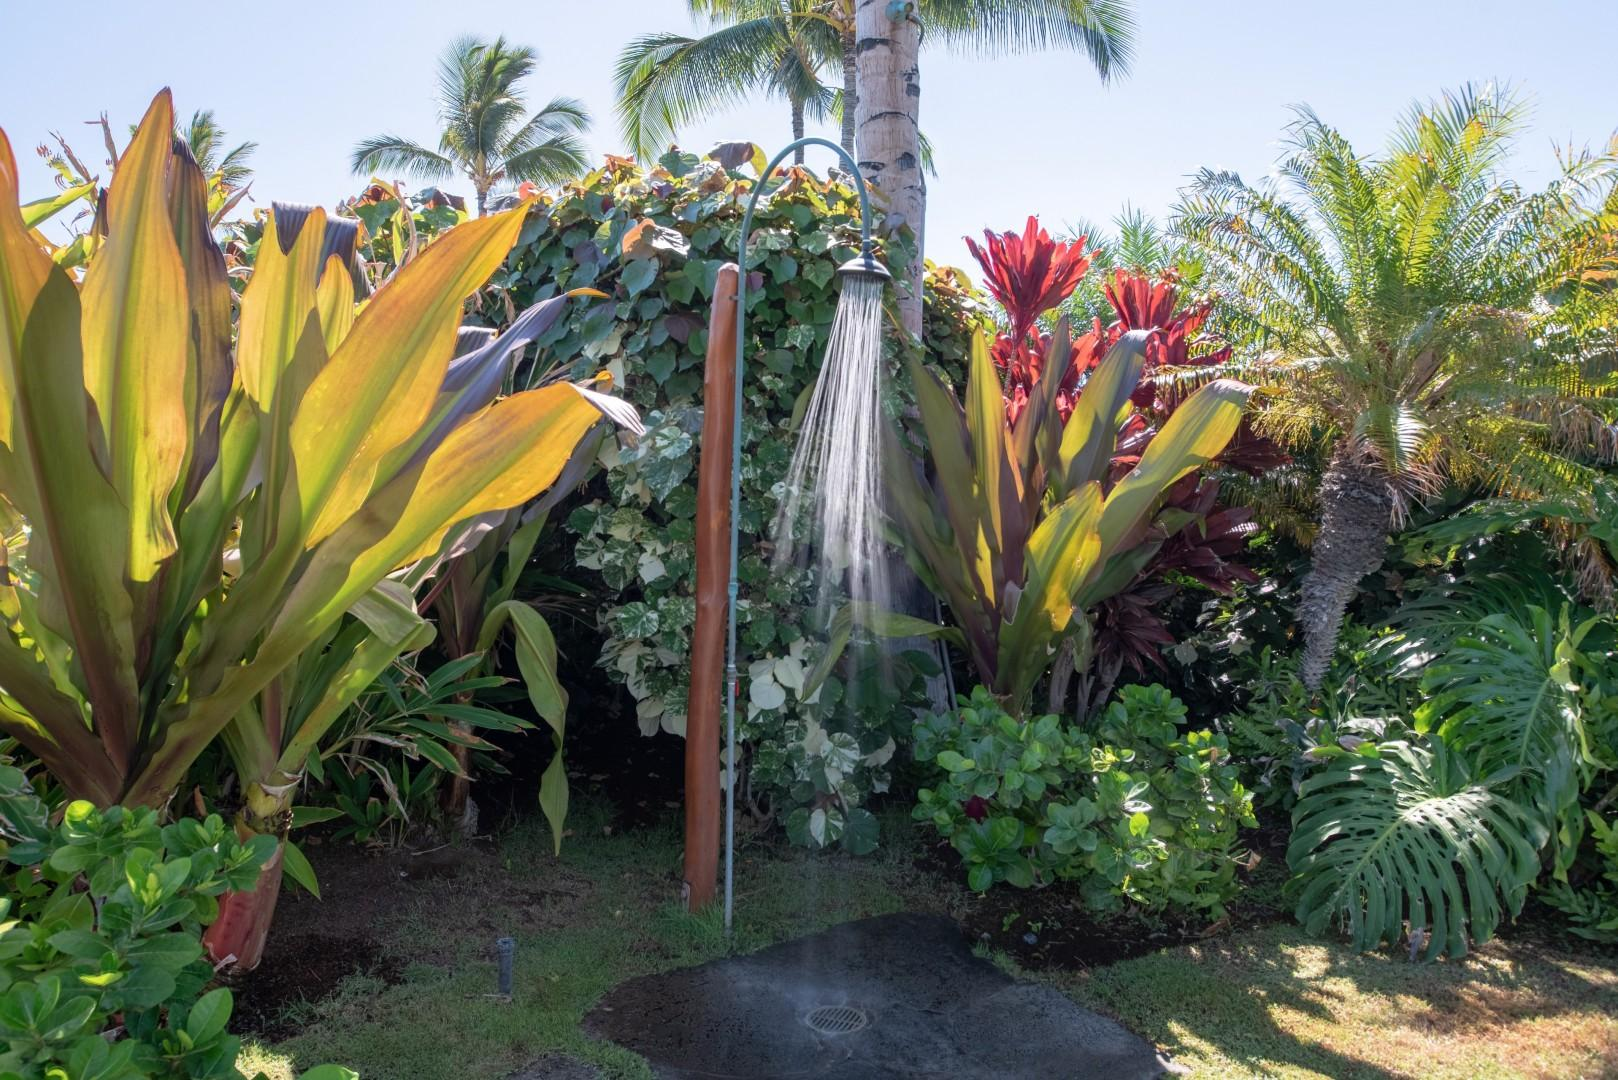 Outdoor shower by the pool surrounded by colorful tropical foliage